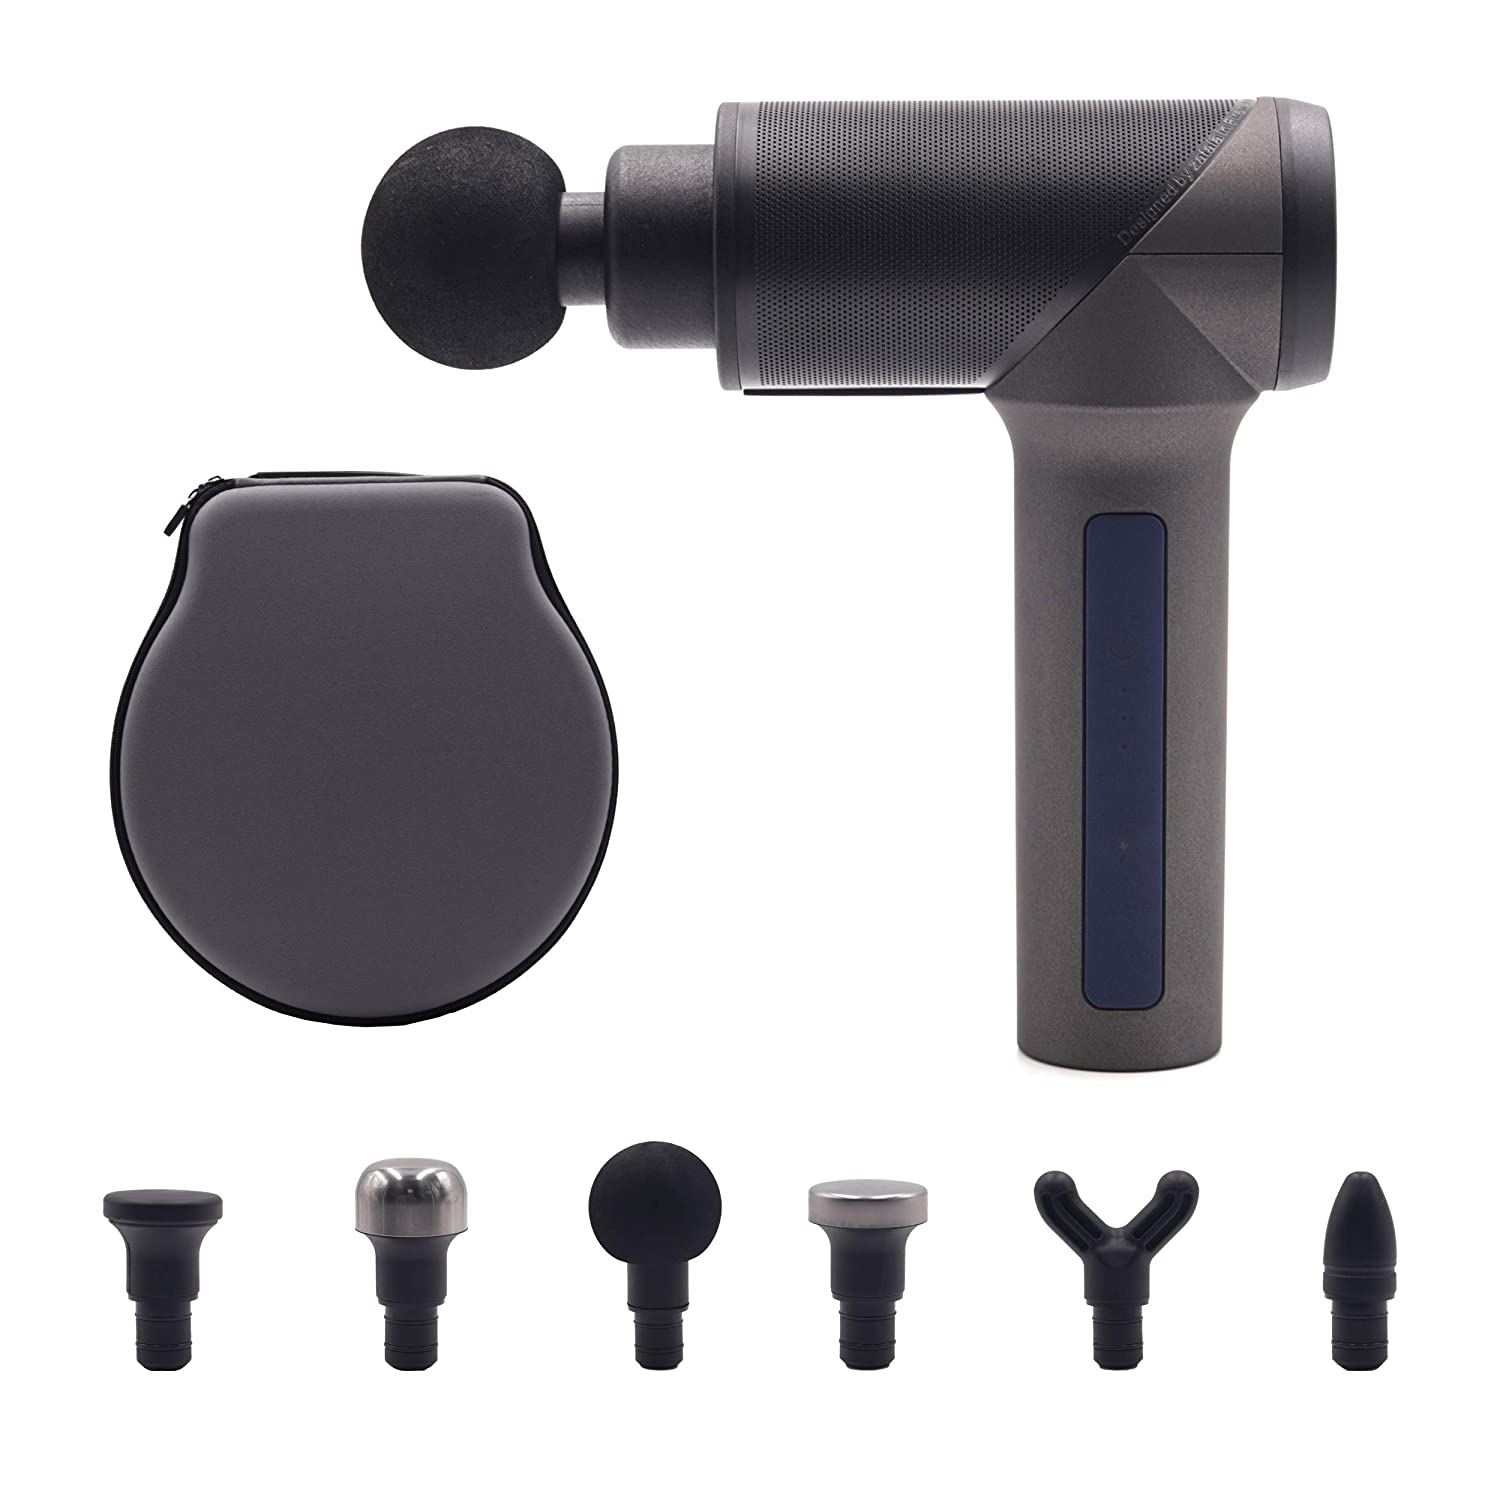 Shogun Sports Massage Ninja PRO. Handheld Professional Silent Massage Gun for Pain Relief and Improved Range of Motion. Percussion Therapy Massager with 6 attachments and Carrying case Included.